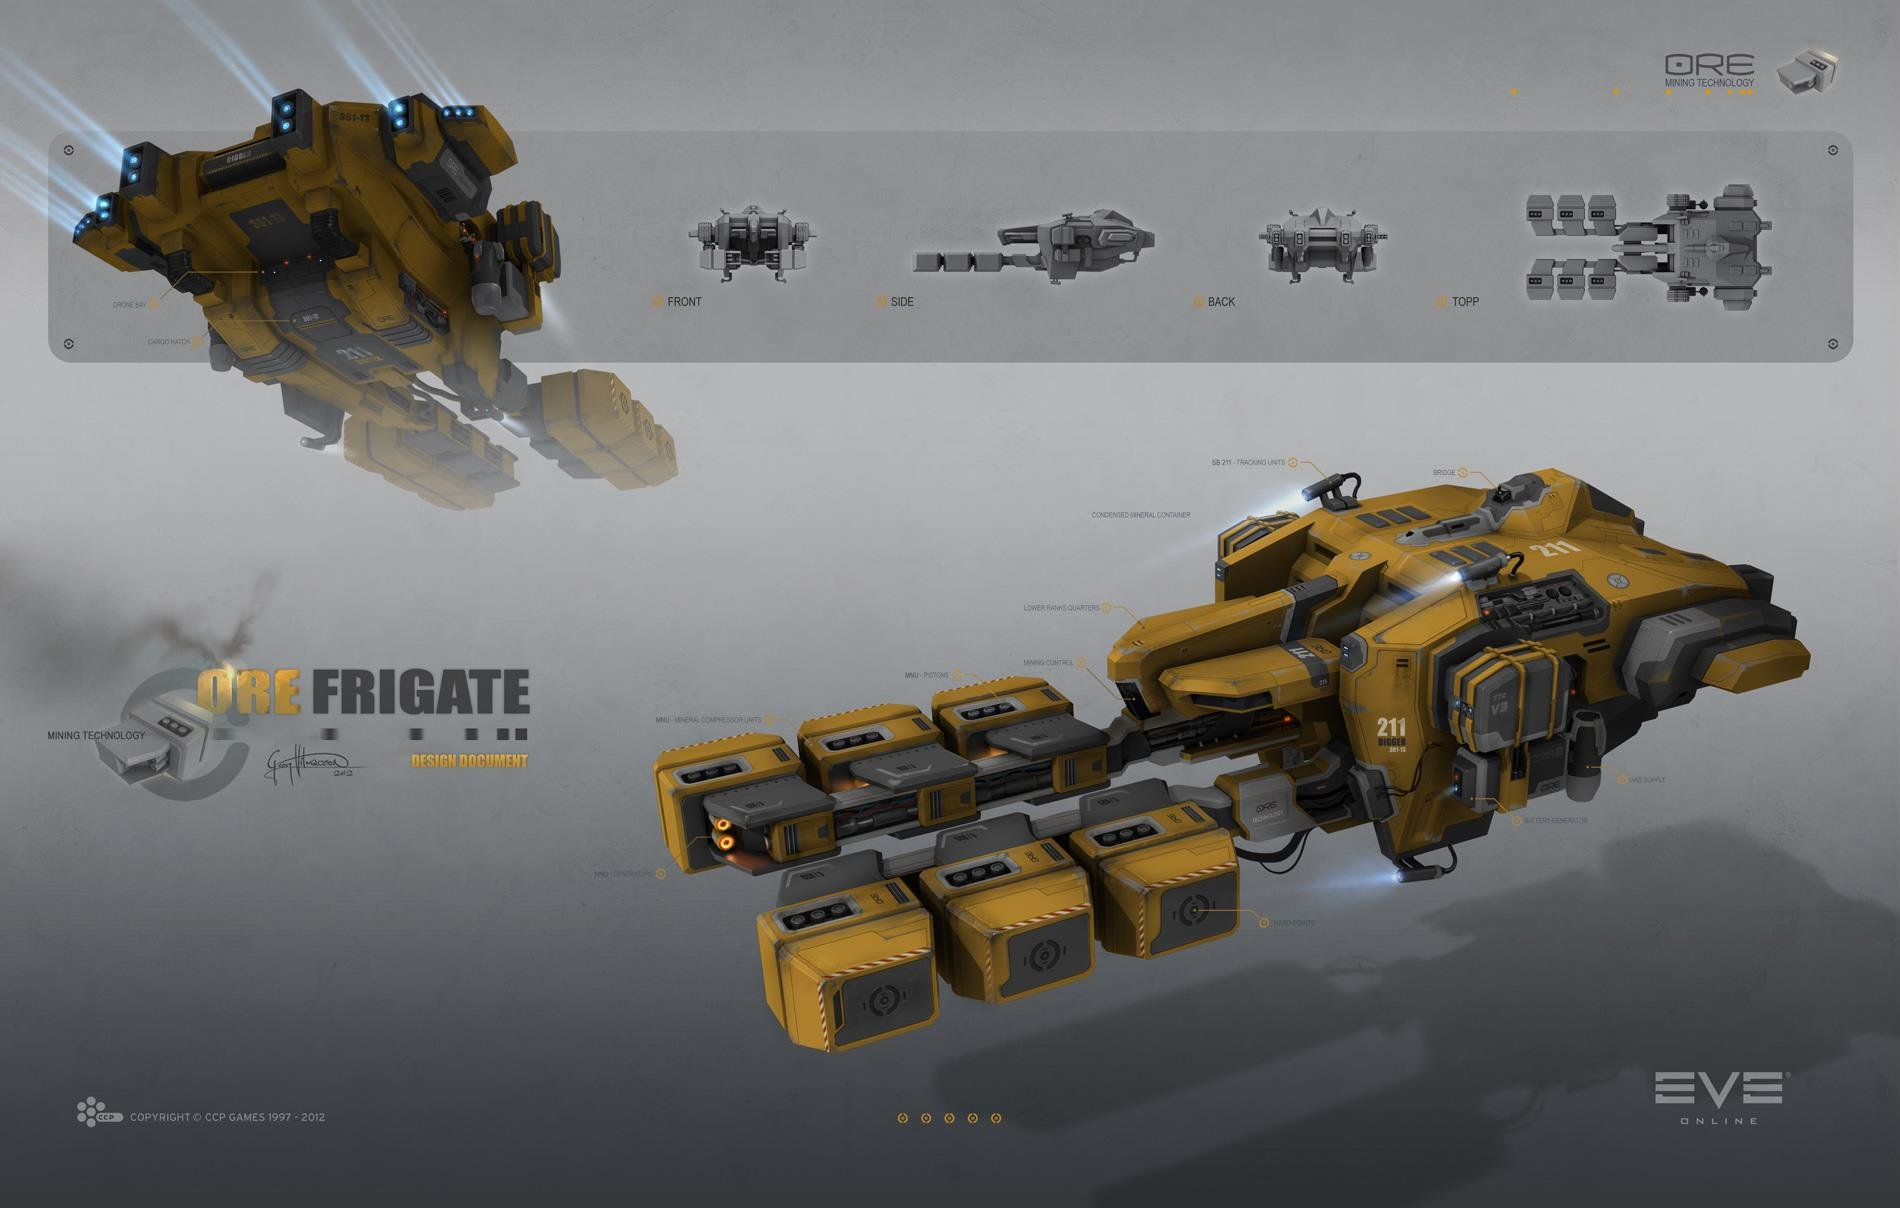 hight resolution of mining frigate venture concept for eve online